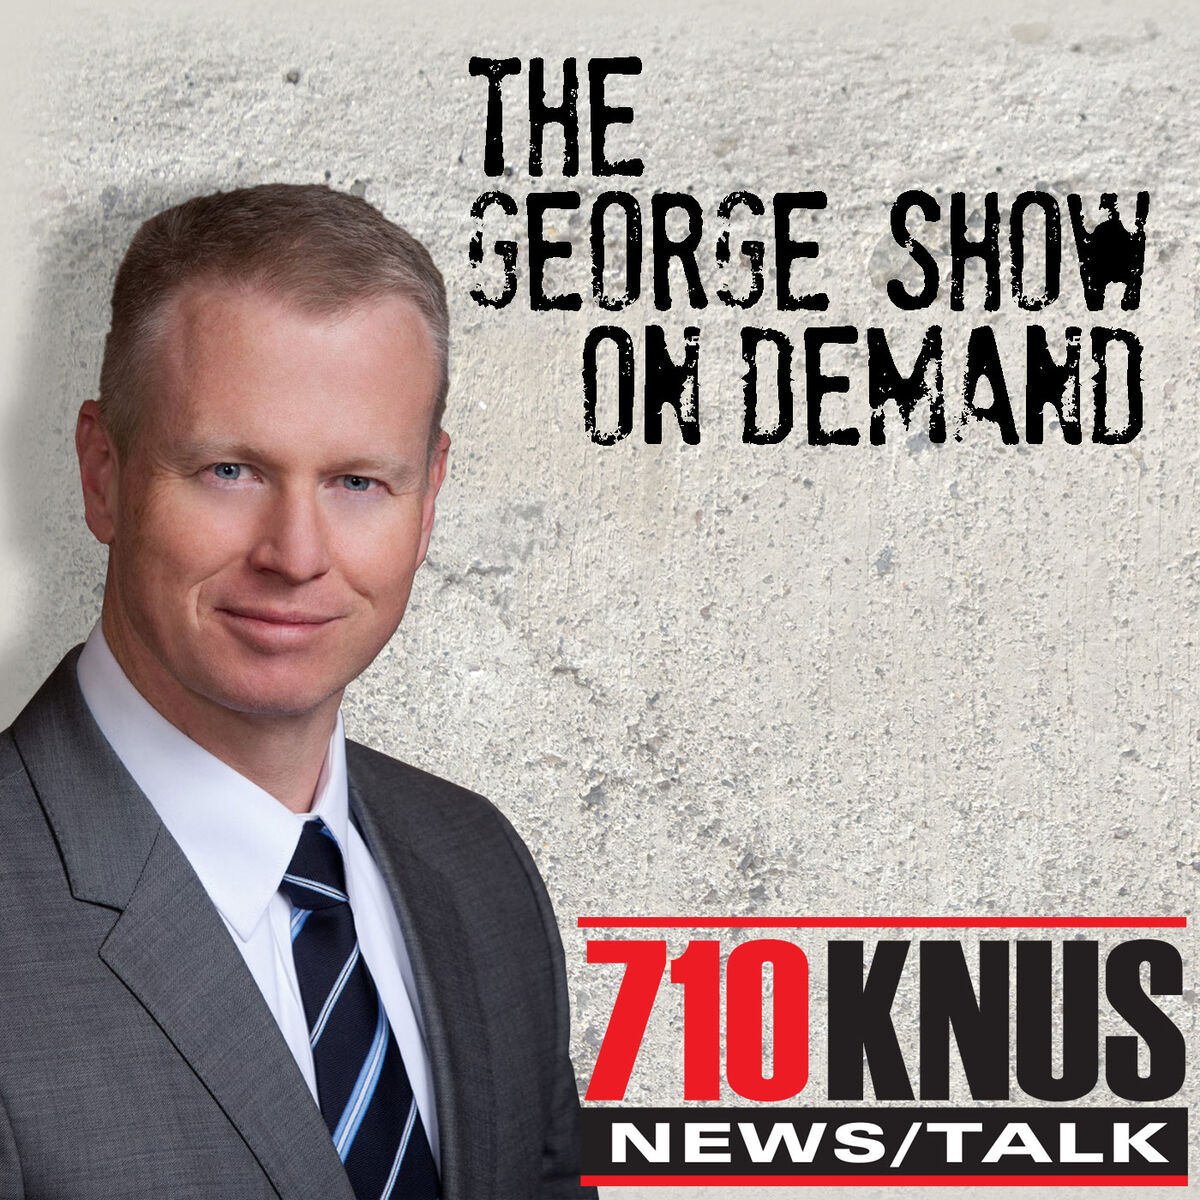 Listen To The George Show Podcast